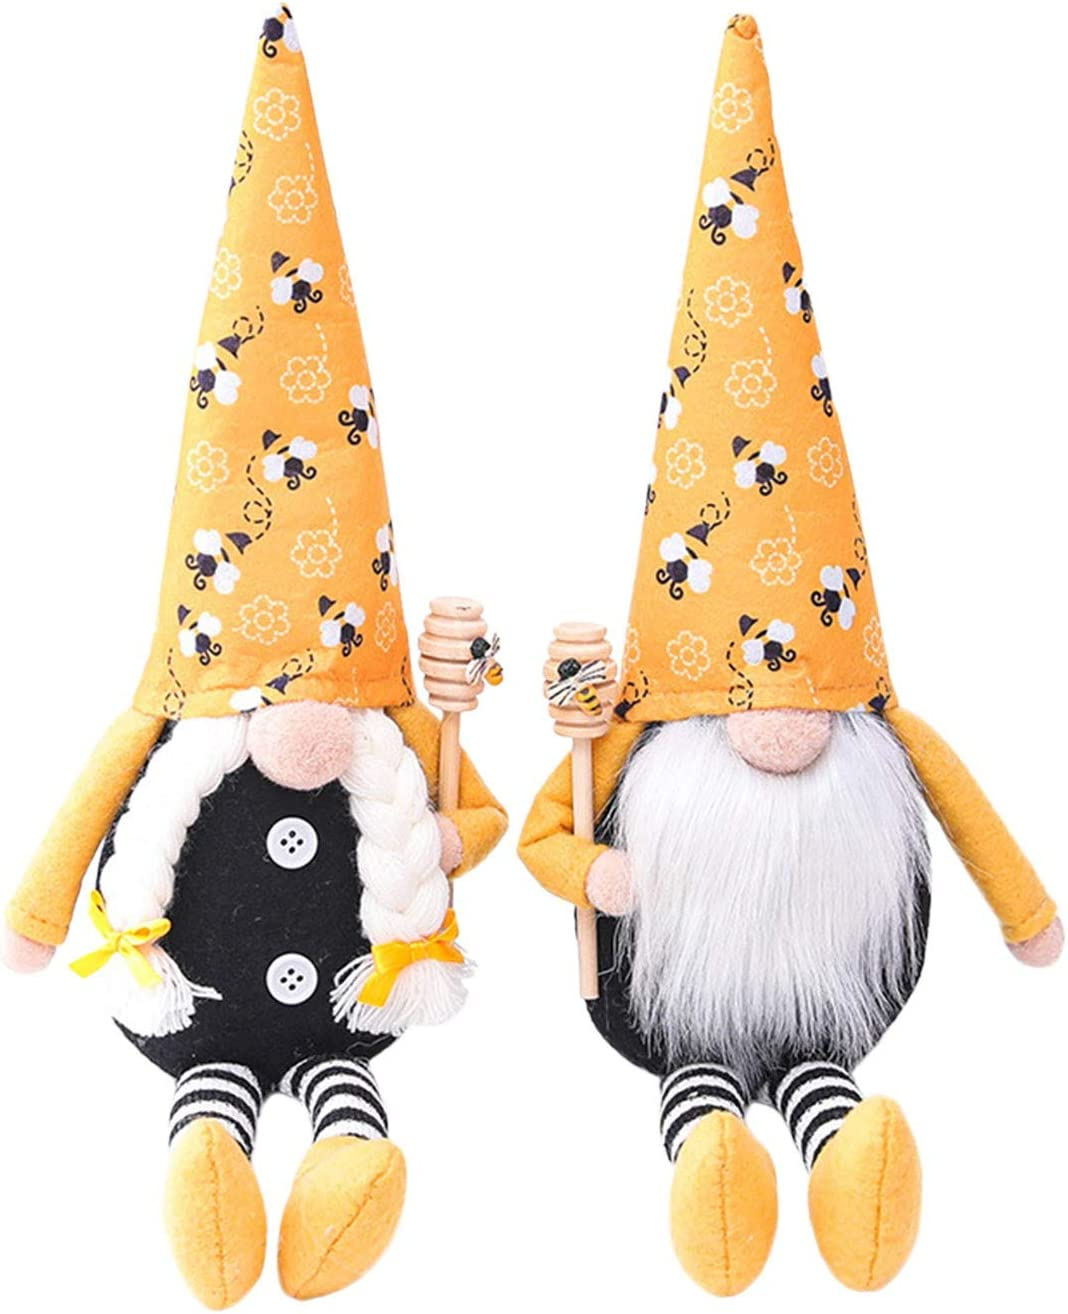 Easter Gnomes Decorations 1 2 3 Attention brand Scandinavian Plush Dec pc Gnome Limited time sale